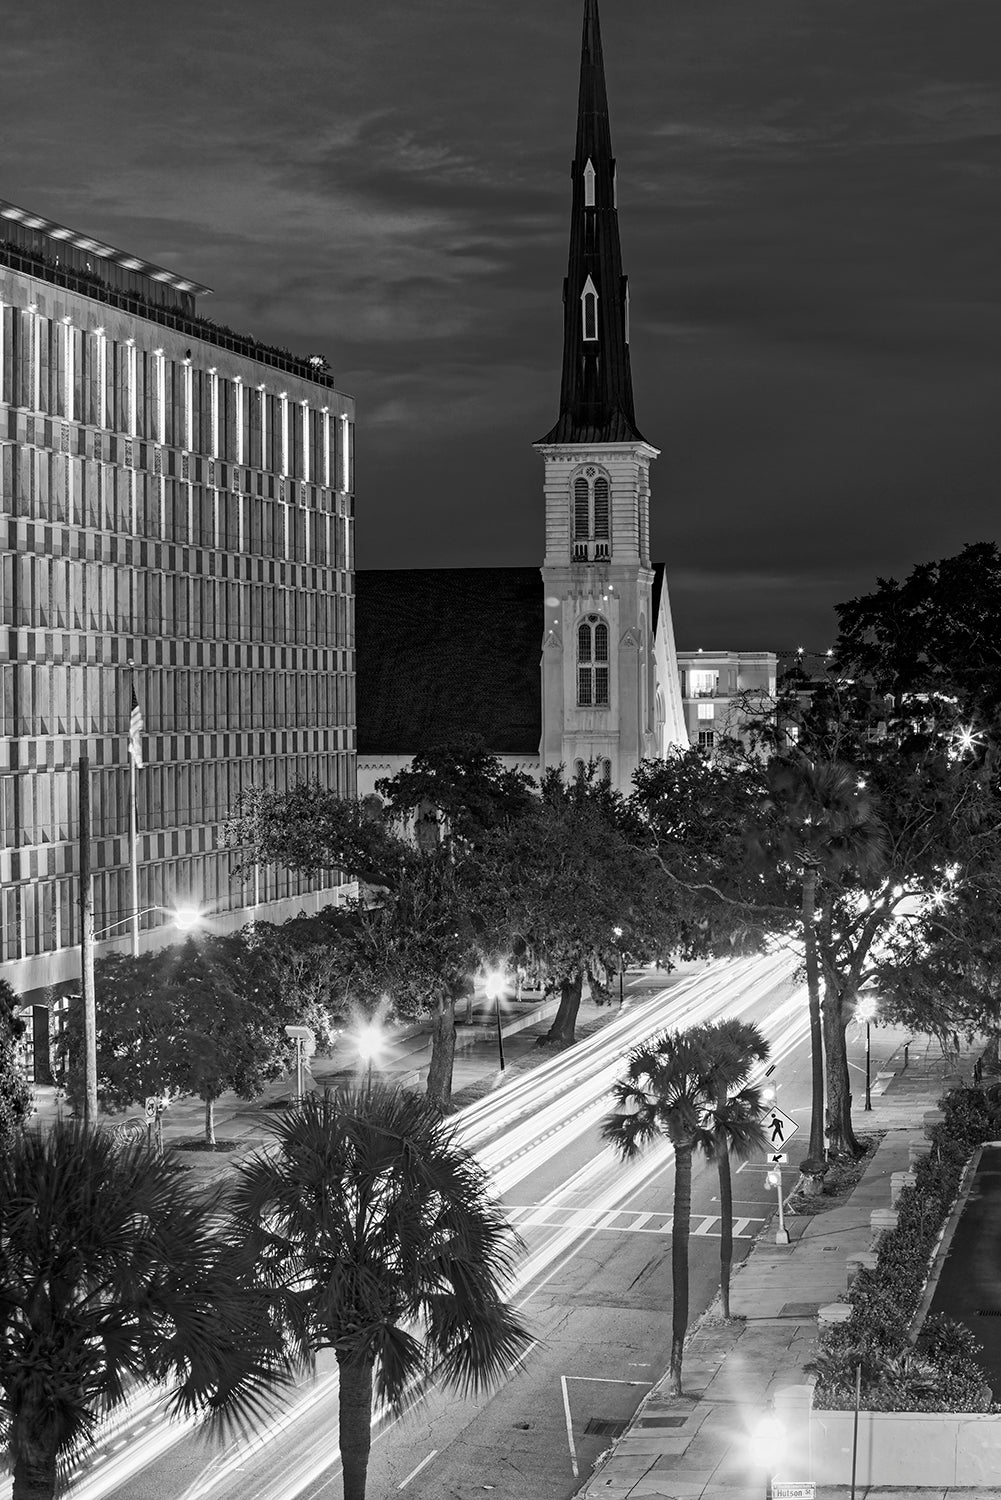 View of Charleston at Twilight - Black and White Photograph by Keith Dotson. Buy a print.